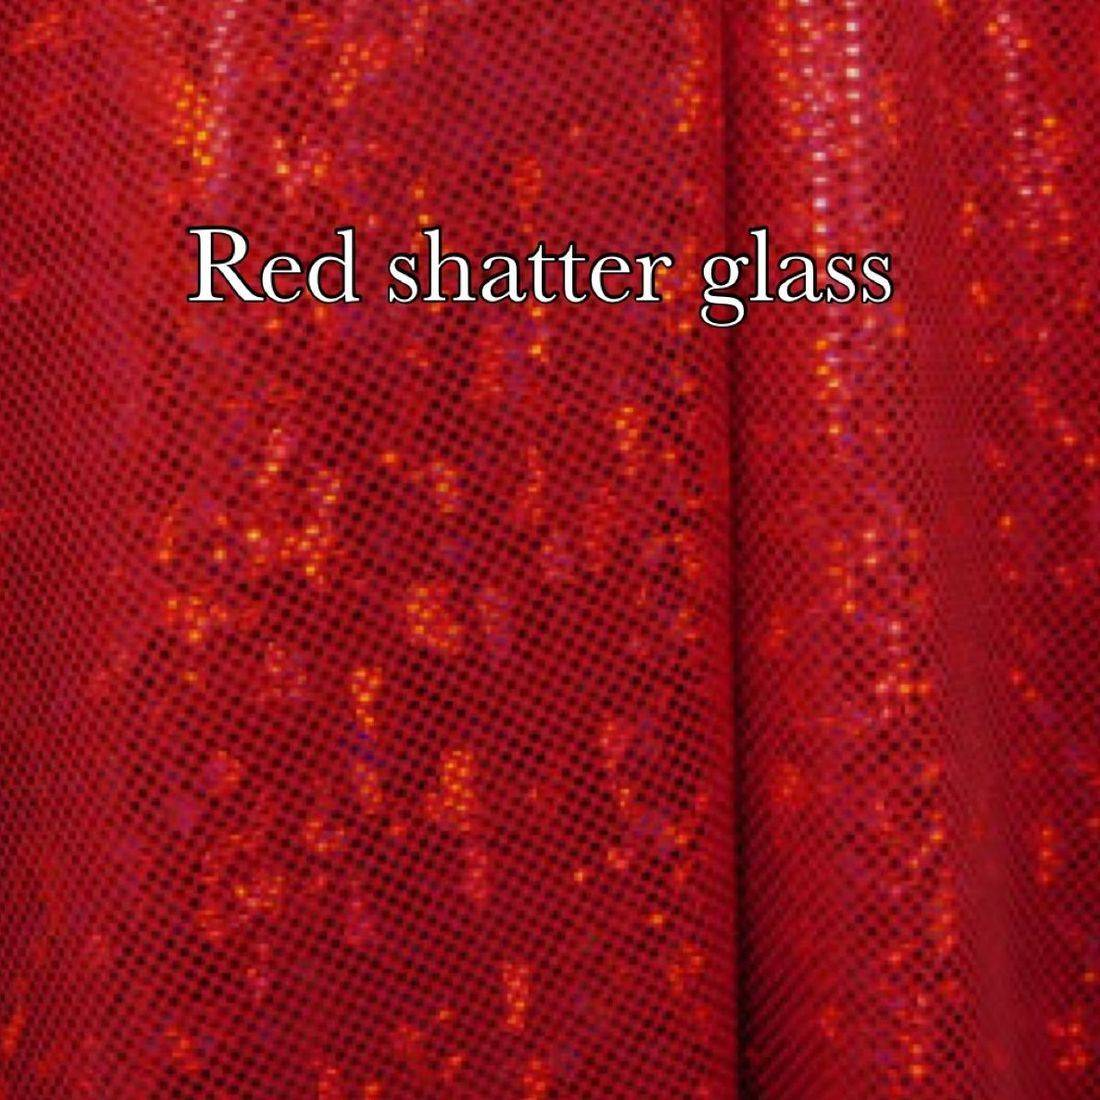 Red shattered glass